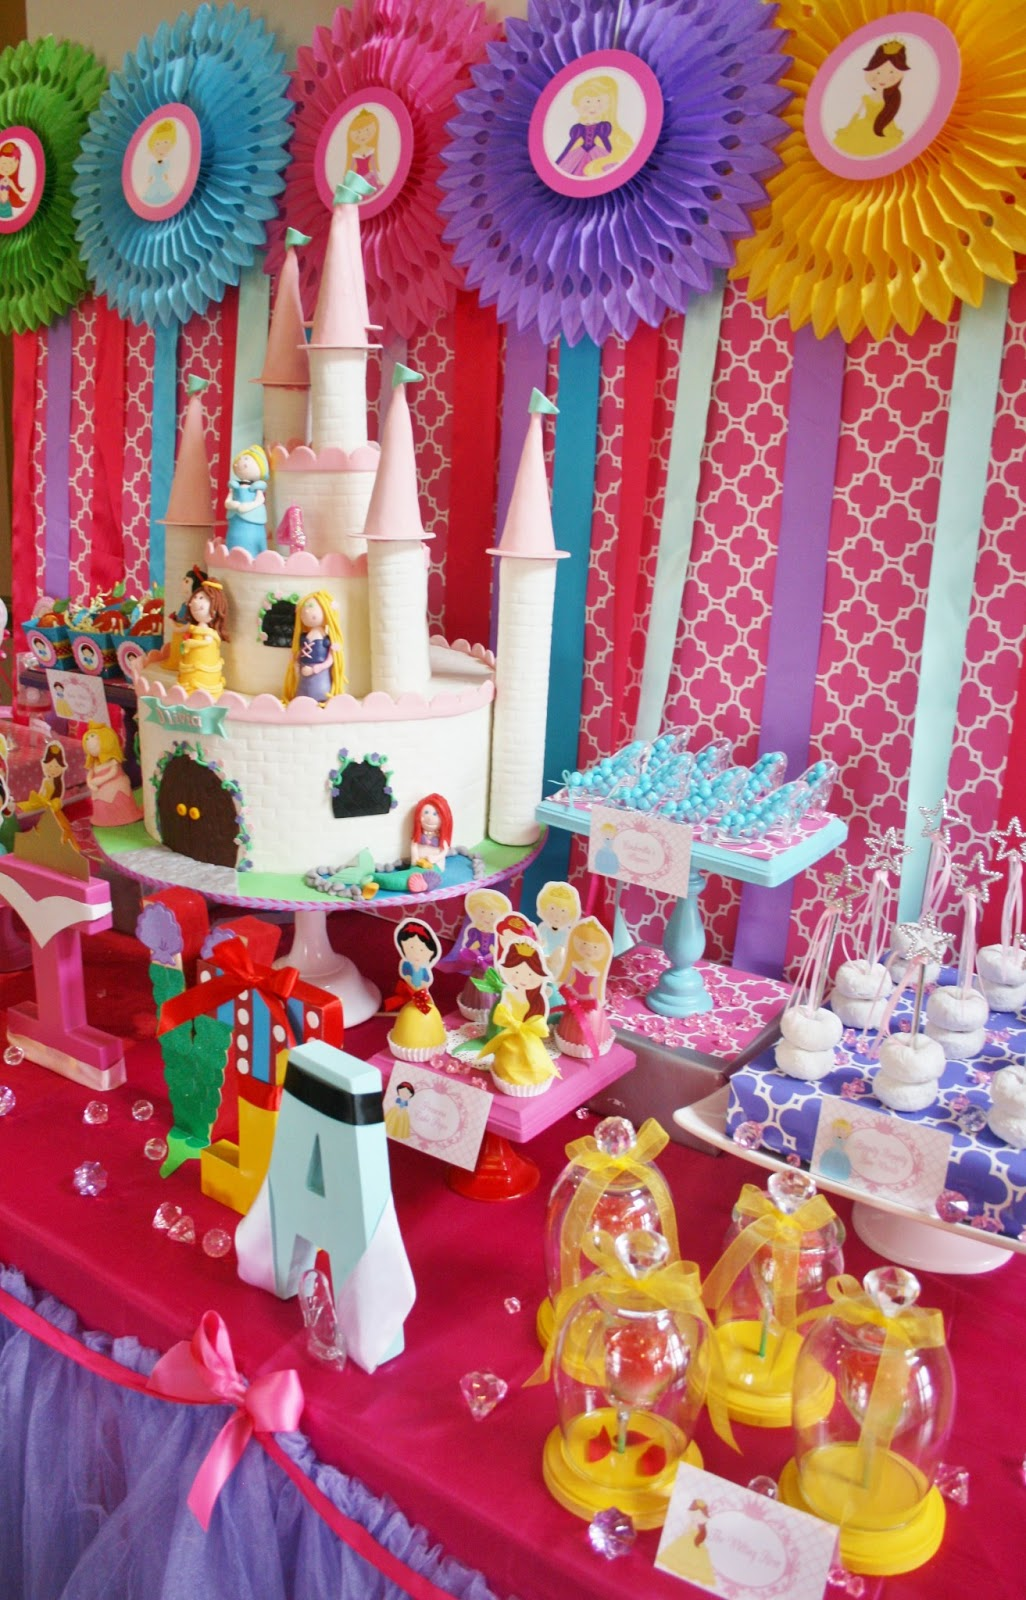 Kara's Party Ideas Pink & Gold Princess Birthday Party |Princess Birthday